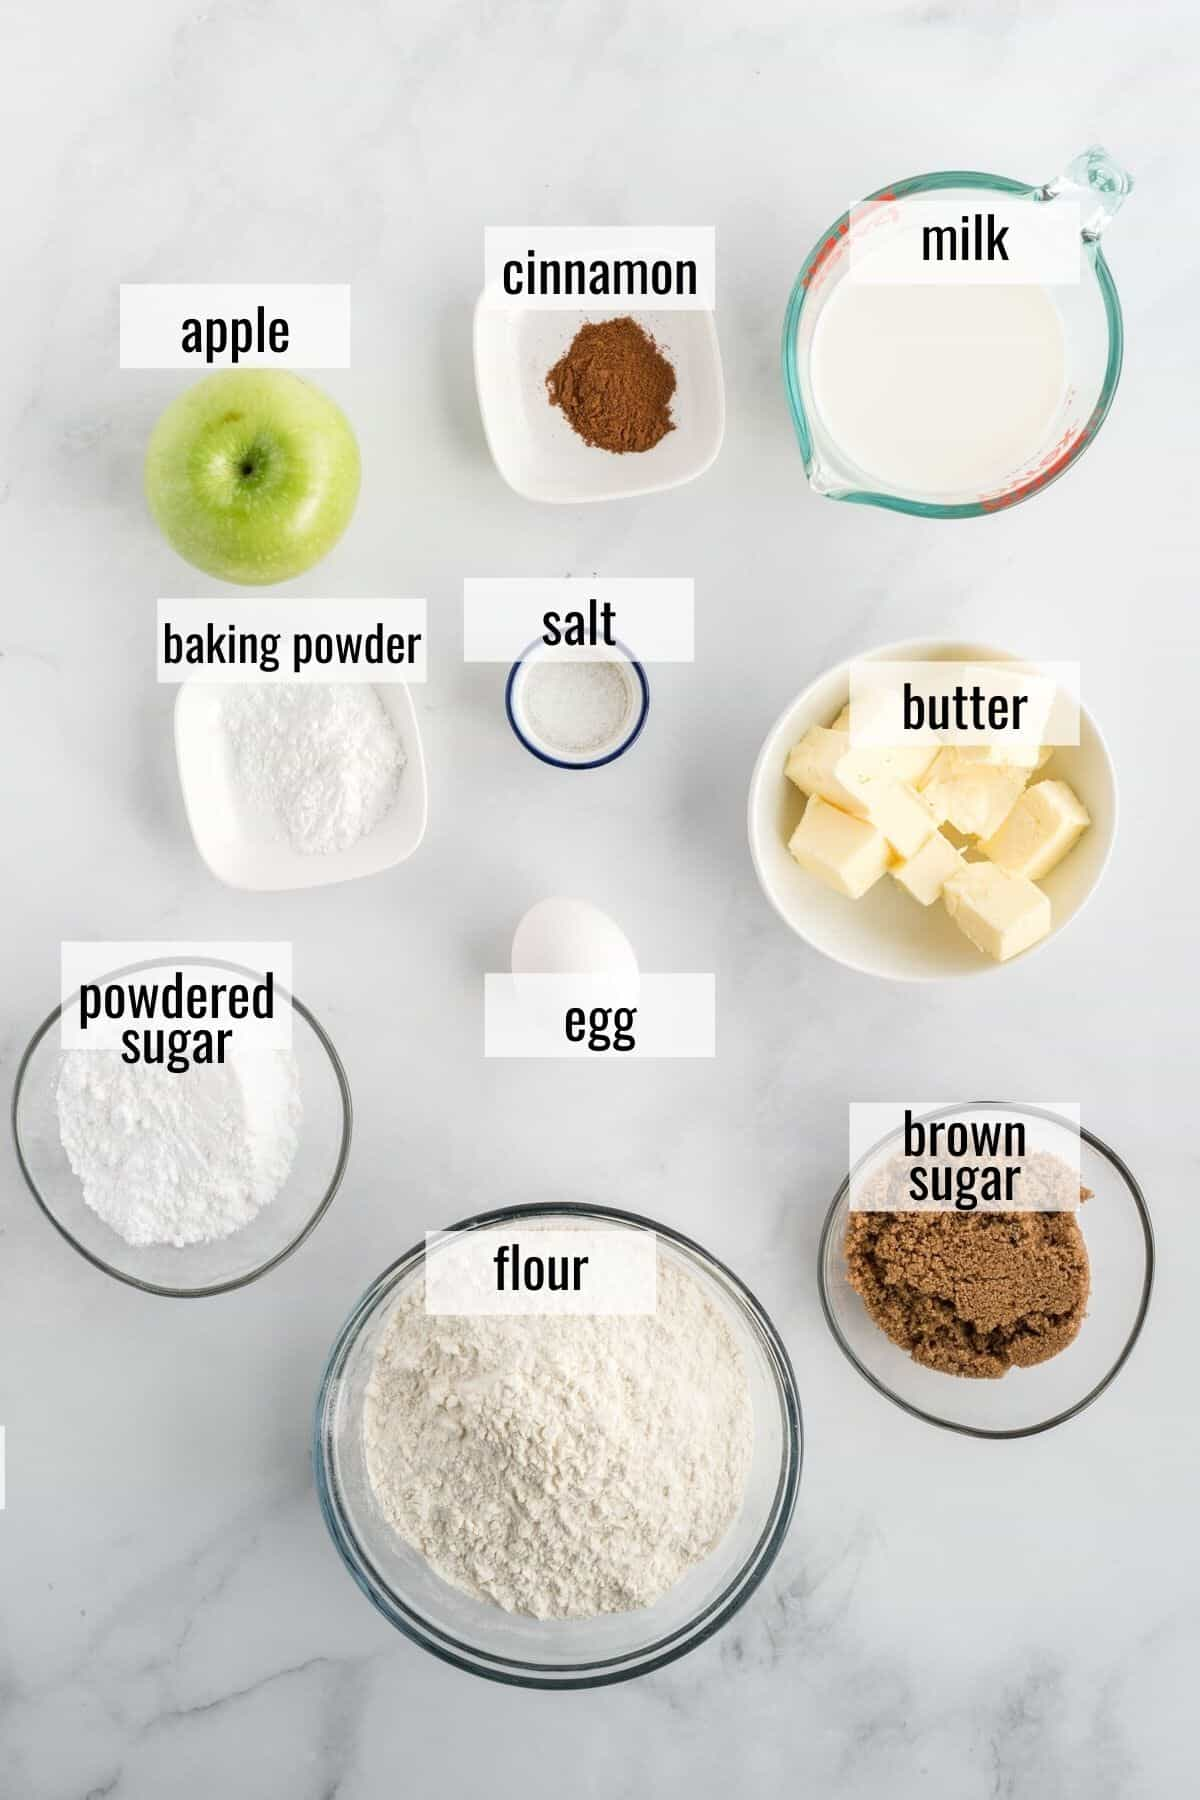 ingredients for apple cinnamon scones laid out and labeled